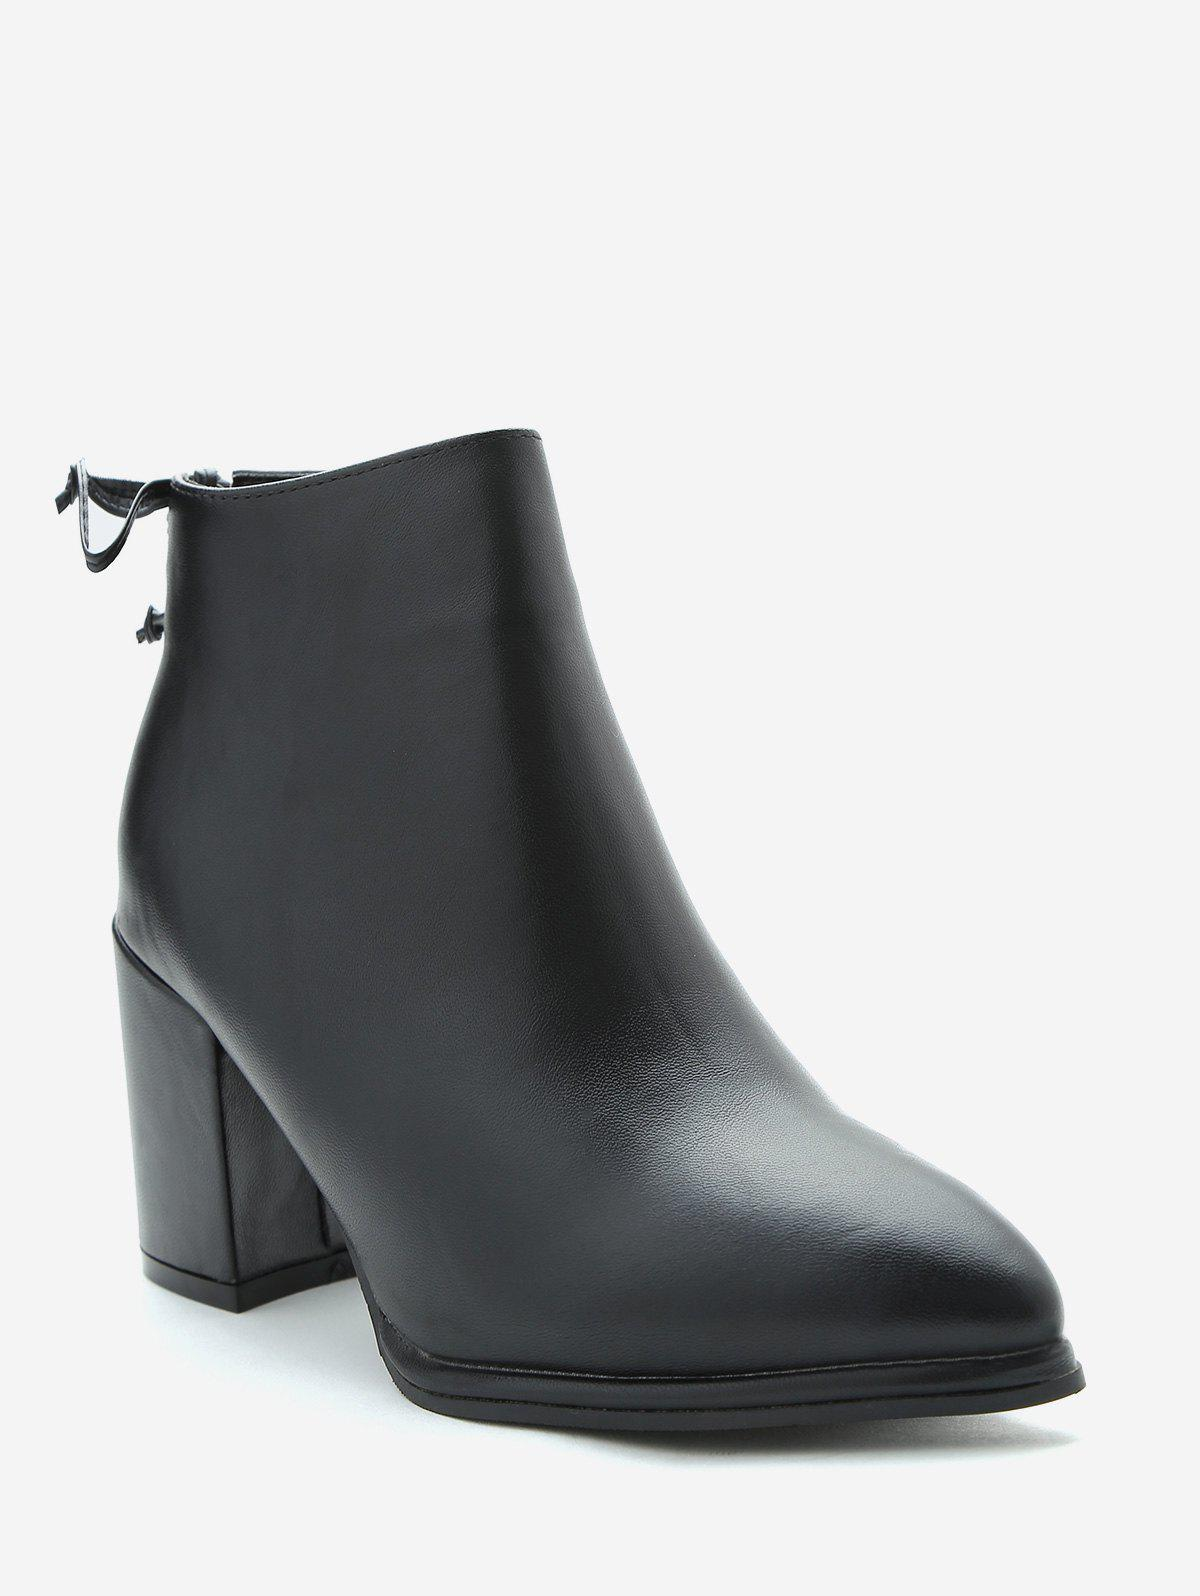 0fa1ced8534e 2019 Chunky Heel Tie Back Ankle Boots